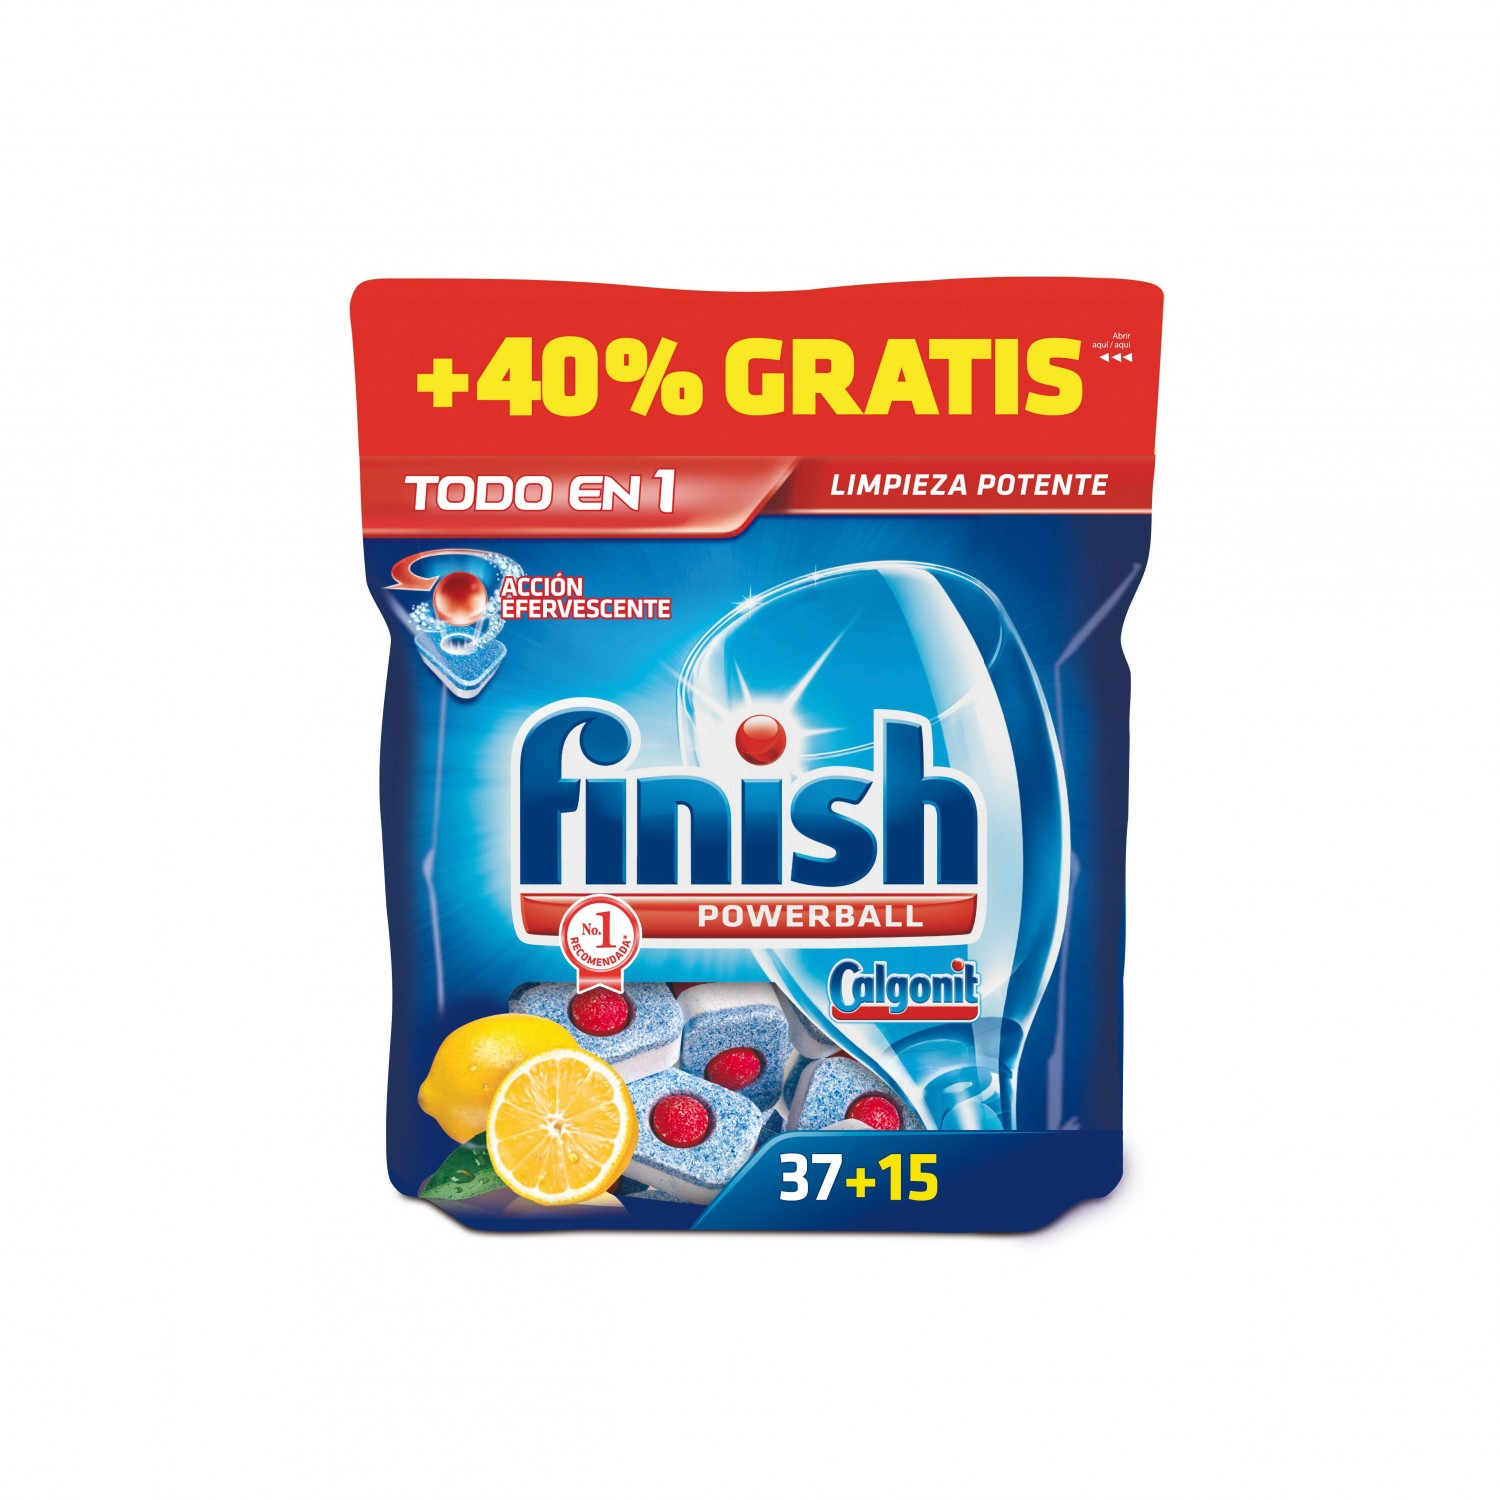 Finish calgonit detergente lavavajillas power ball todo en 1 limon accion efervescente 15 gratis 37 en pastilla